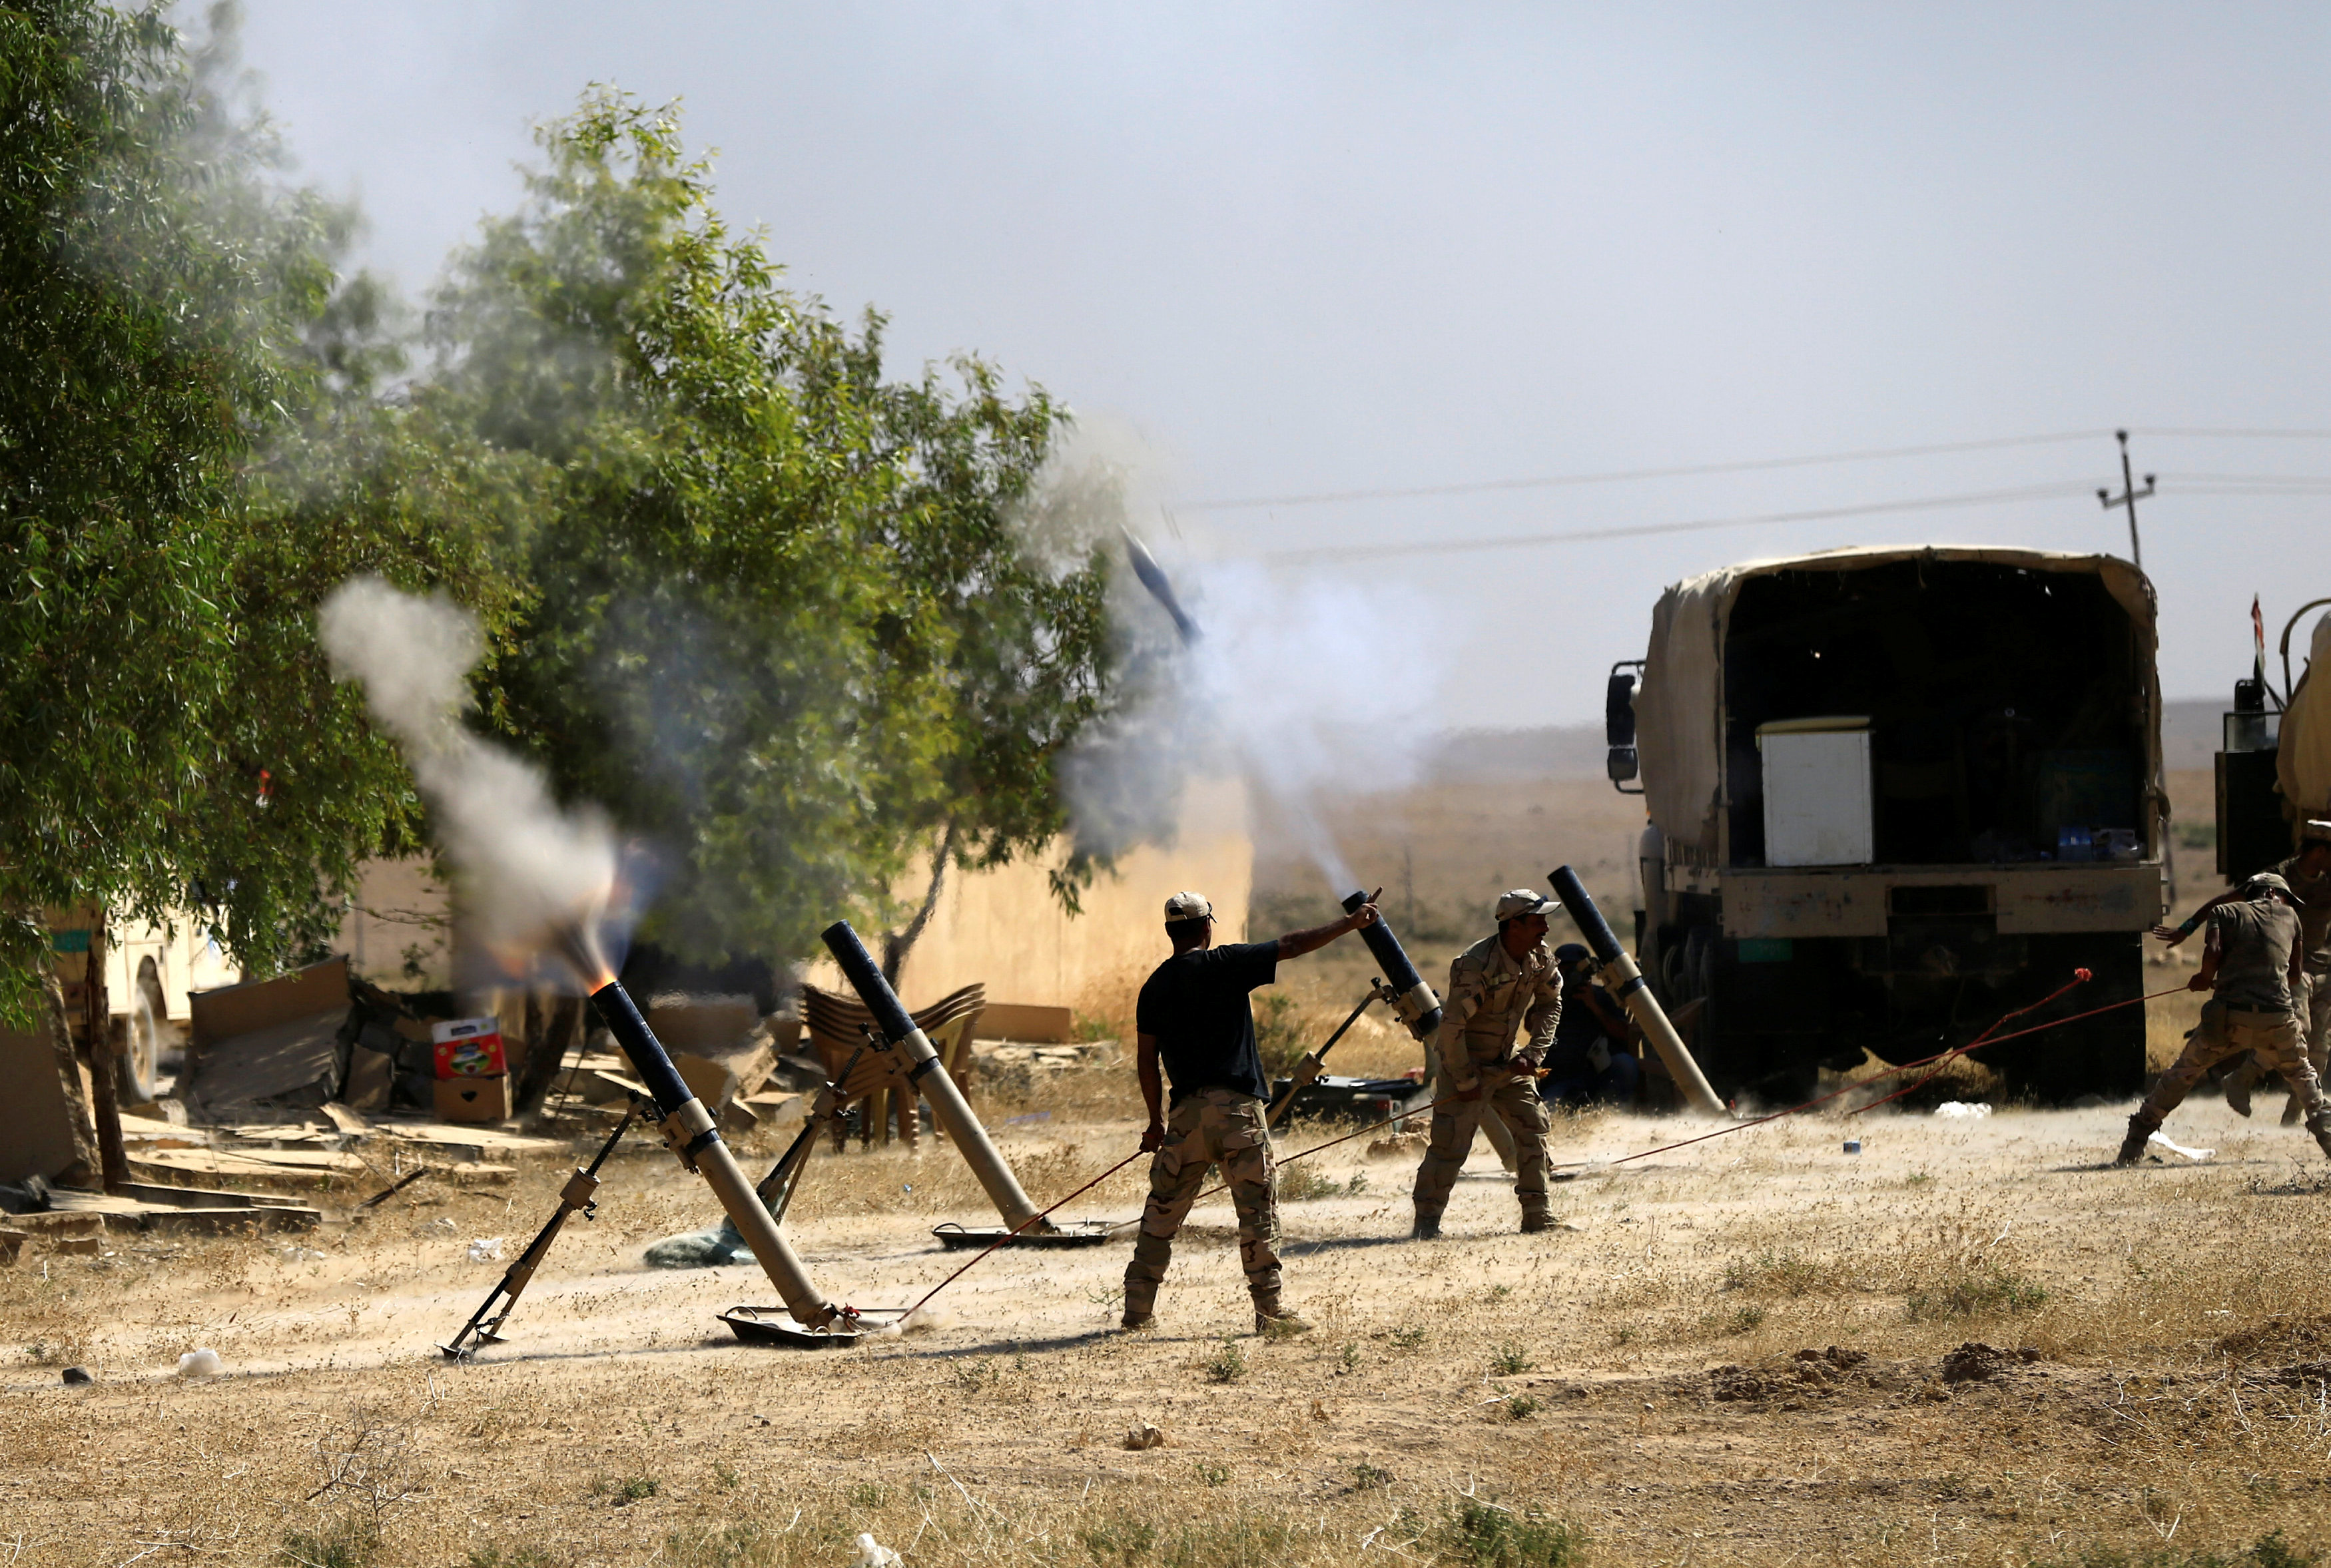 Members of Iraqi Army fire mortar shells during the war between Iraqi army and Shi'ite Popular Mobilization Forces (PMF) against the Islamic State militants in al-Ayadiya, northwest of Tal Afar, Iraq August 28, 2017. REUTERS/Thaier Al-Sudani